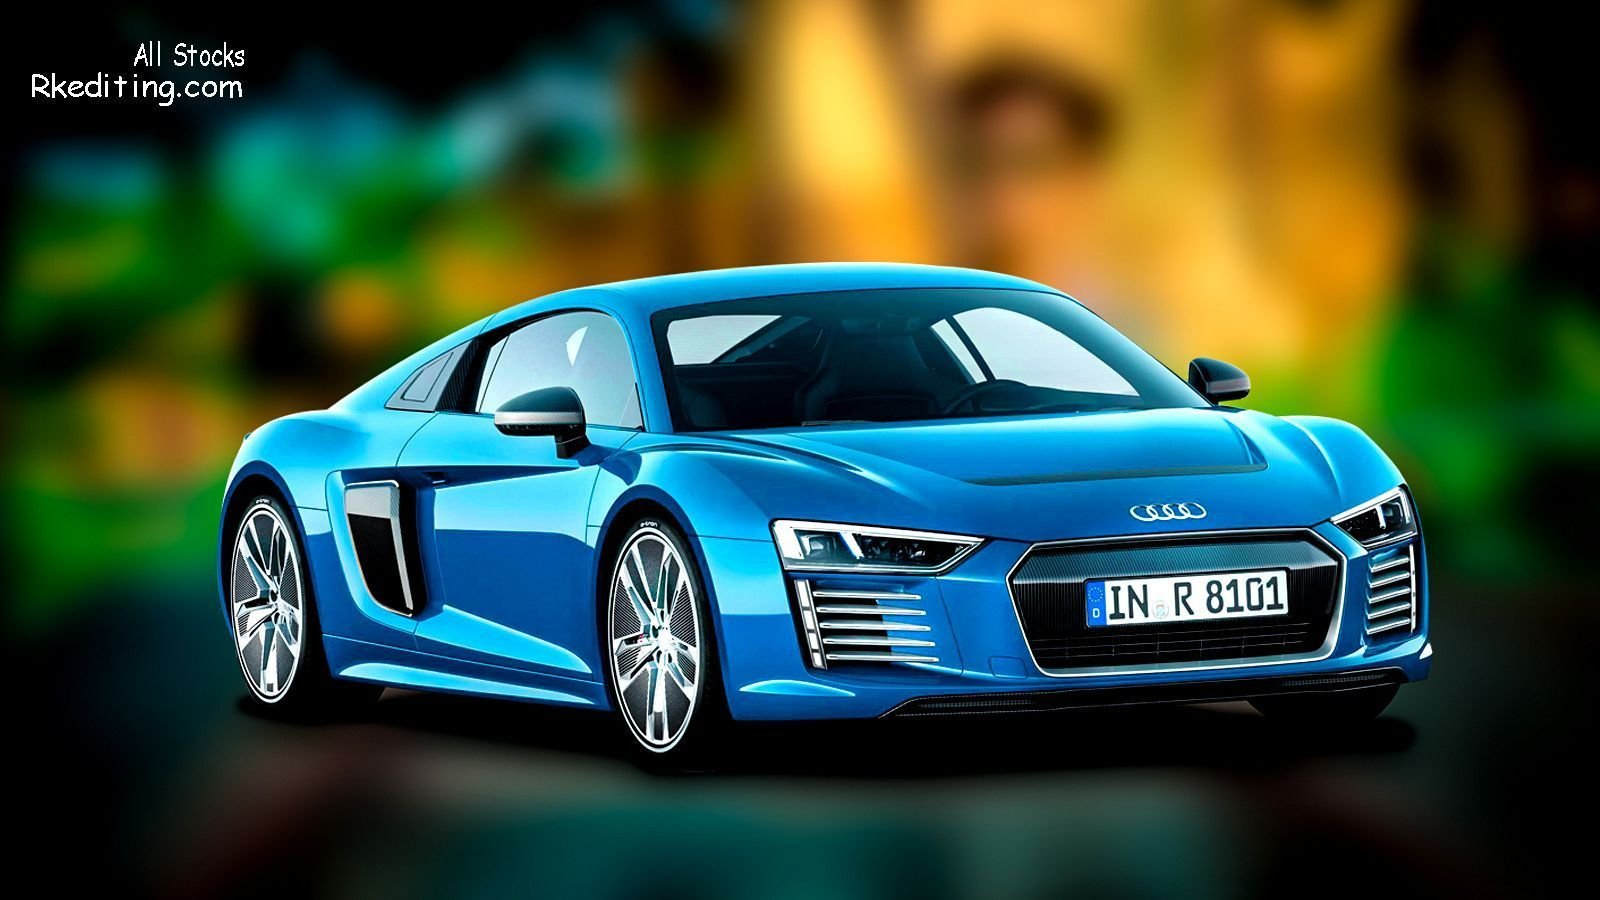 New Tag For Hd Background Of Car Cb Edits Hd Background In On This Month